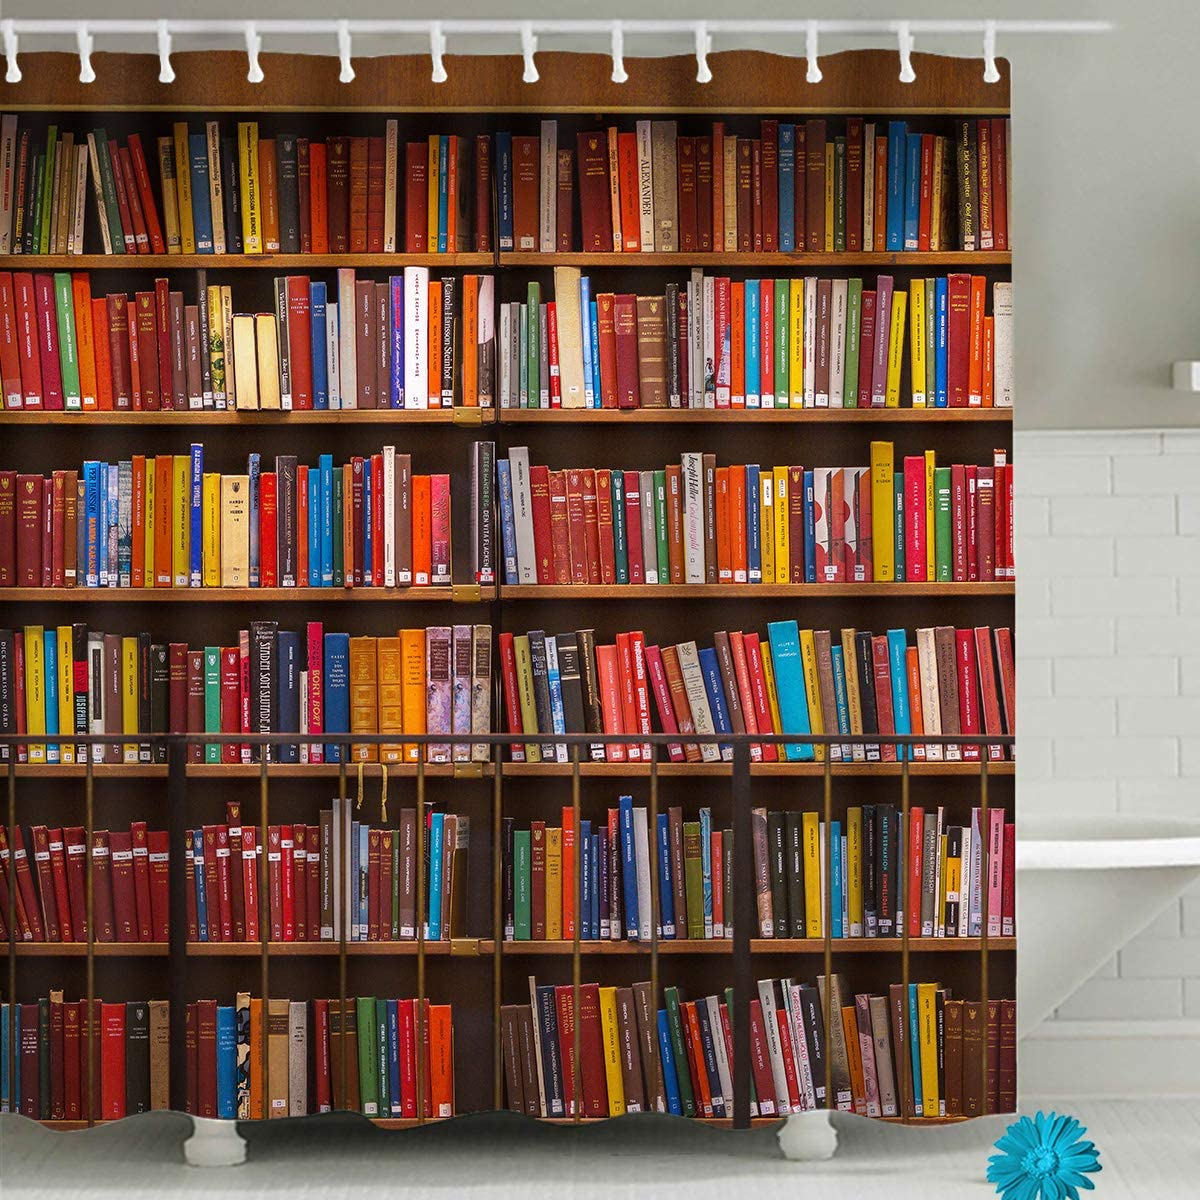 FAITOVE Library Bookshelf Shower Curtain Vintage Educational Bookcase Shower Curtain Readable Books Fabric Polyester Waterproof Bathroom Decor with Hooks 72